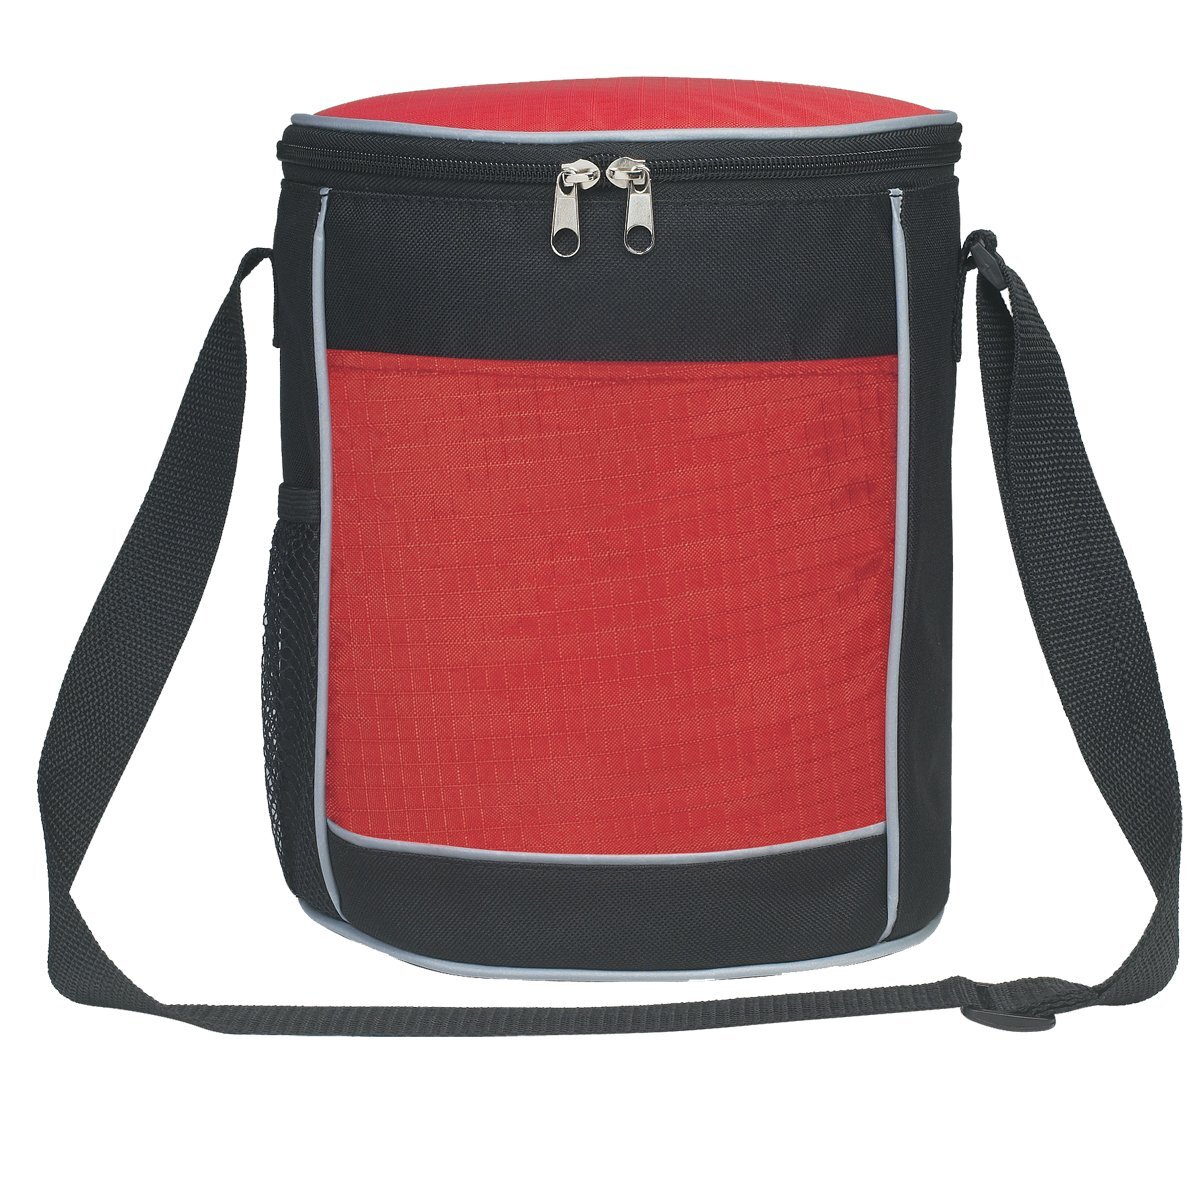 Barrel 10 Can Cooler Bag